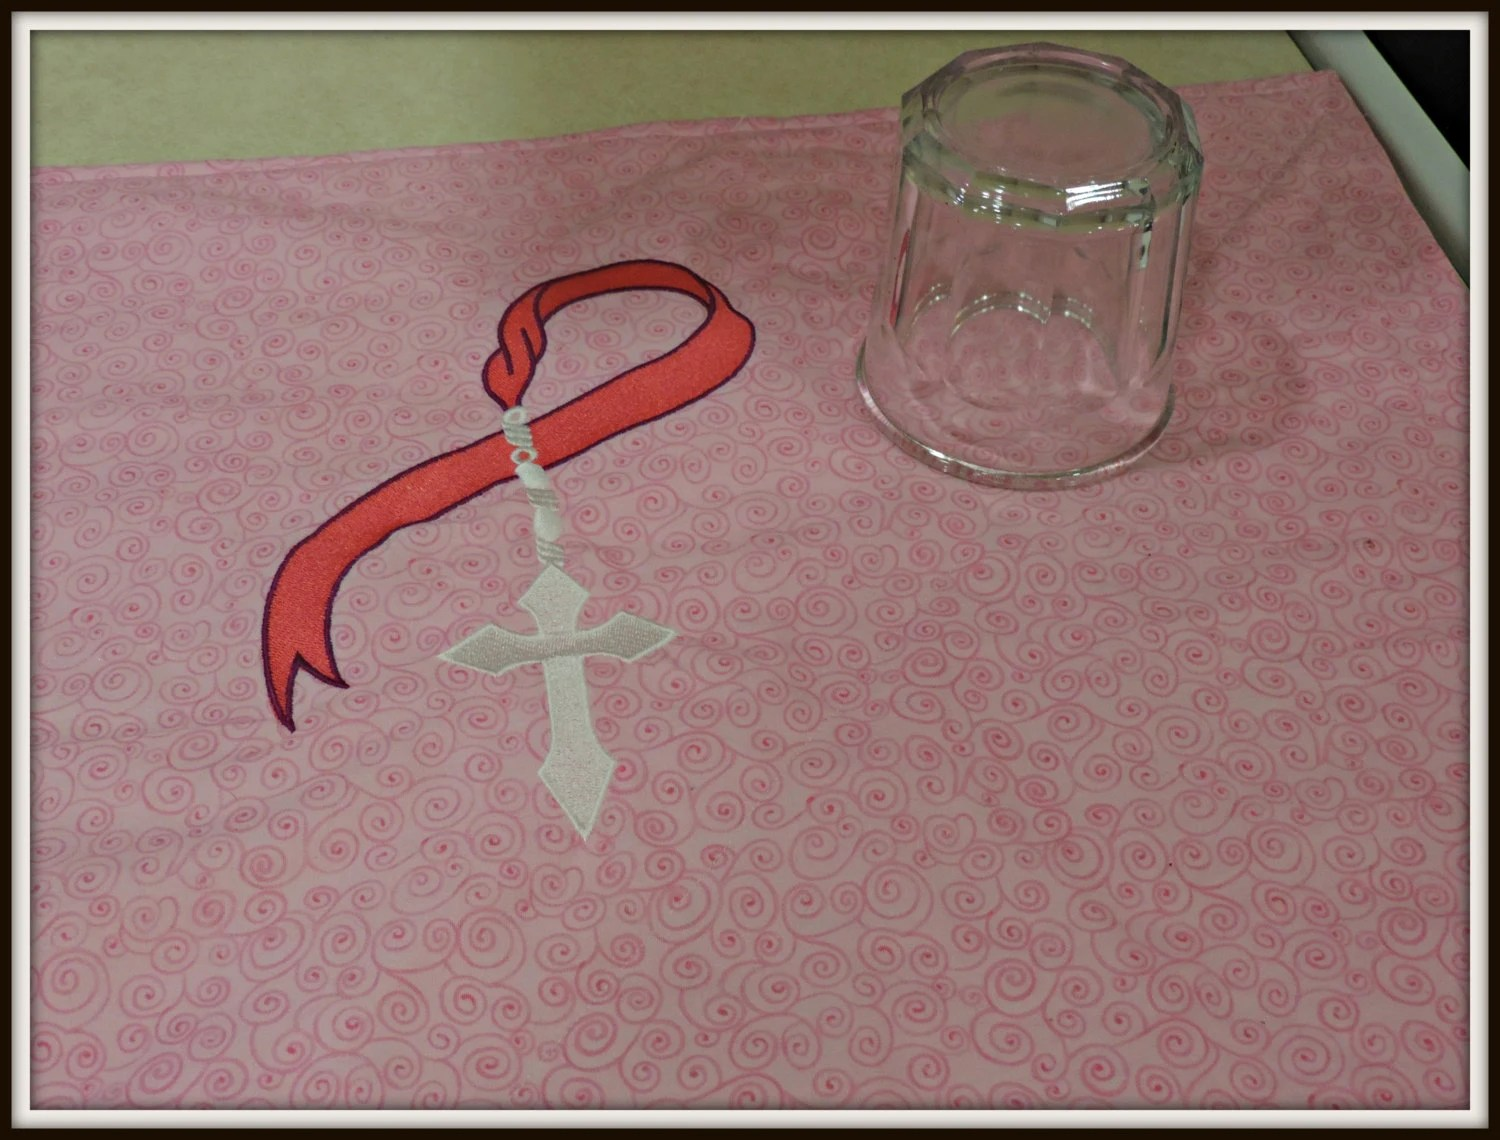 page 5 kitchen countertop protectors counter protector great cook kitchen towel 15 00 pink cancer ribbon and cross Dish mat hope dish drying towel rosary kitchen mat